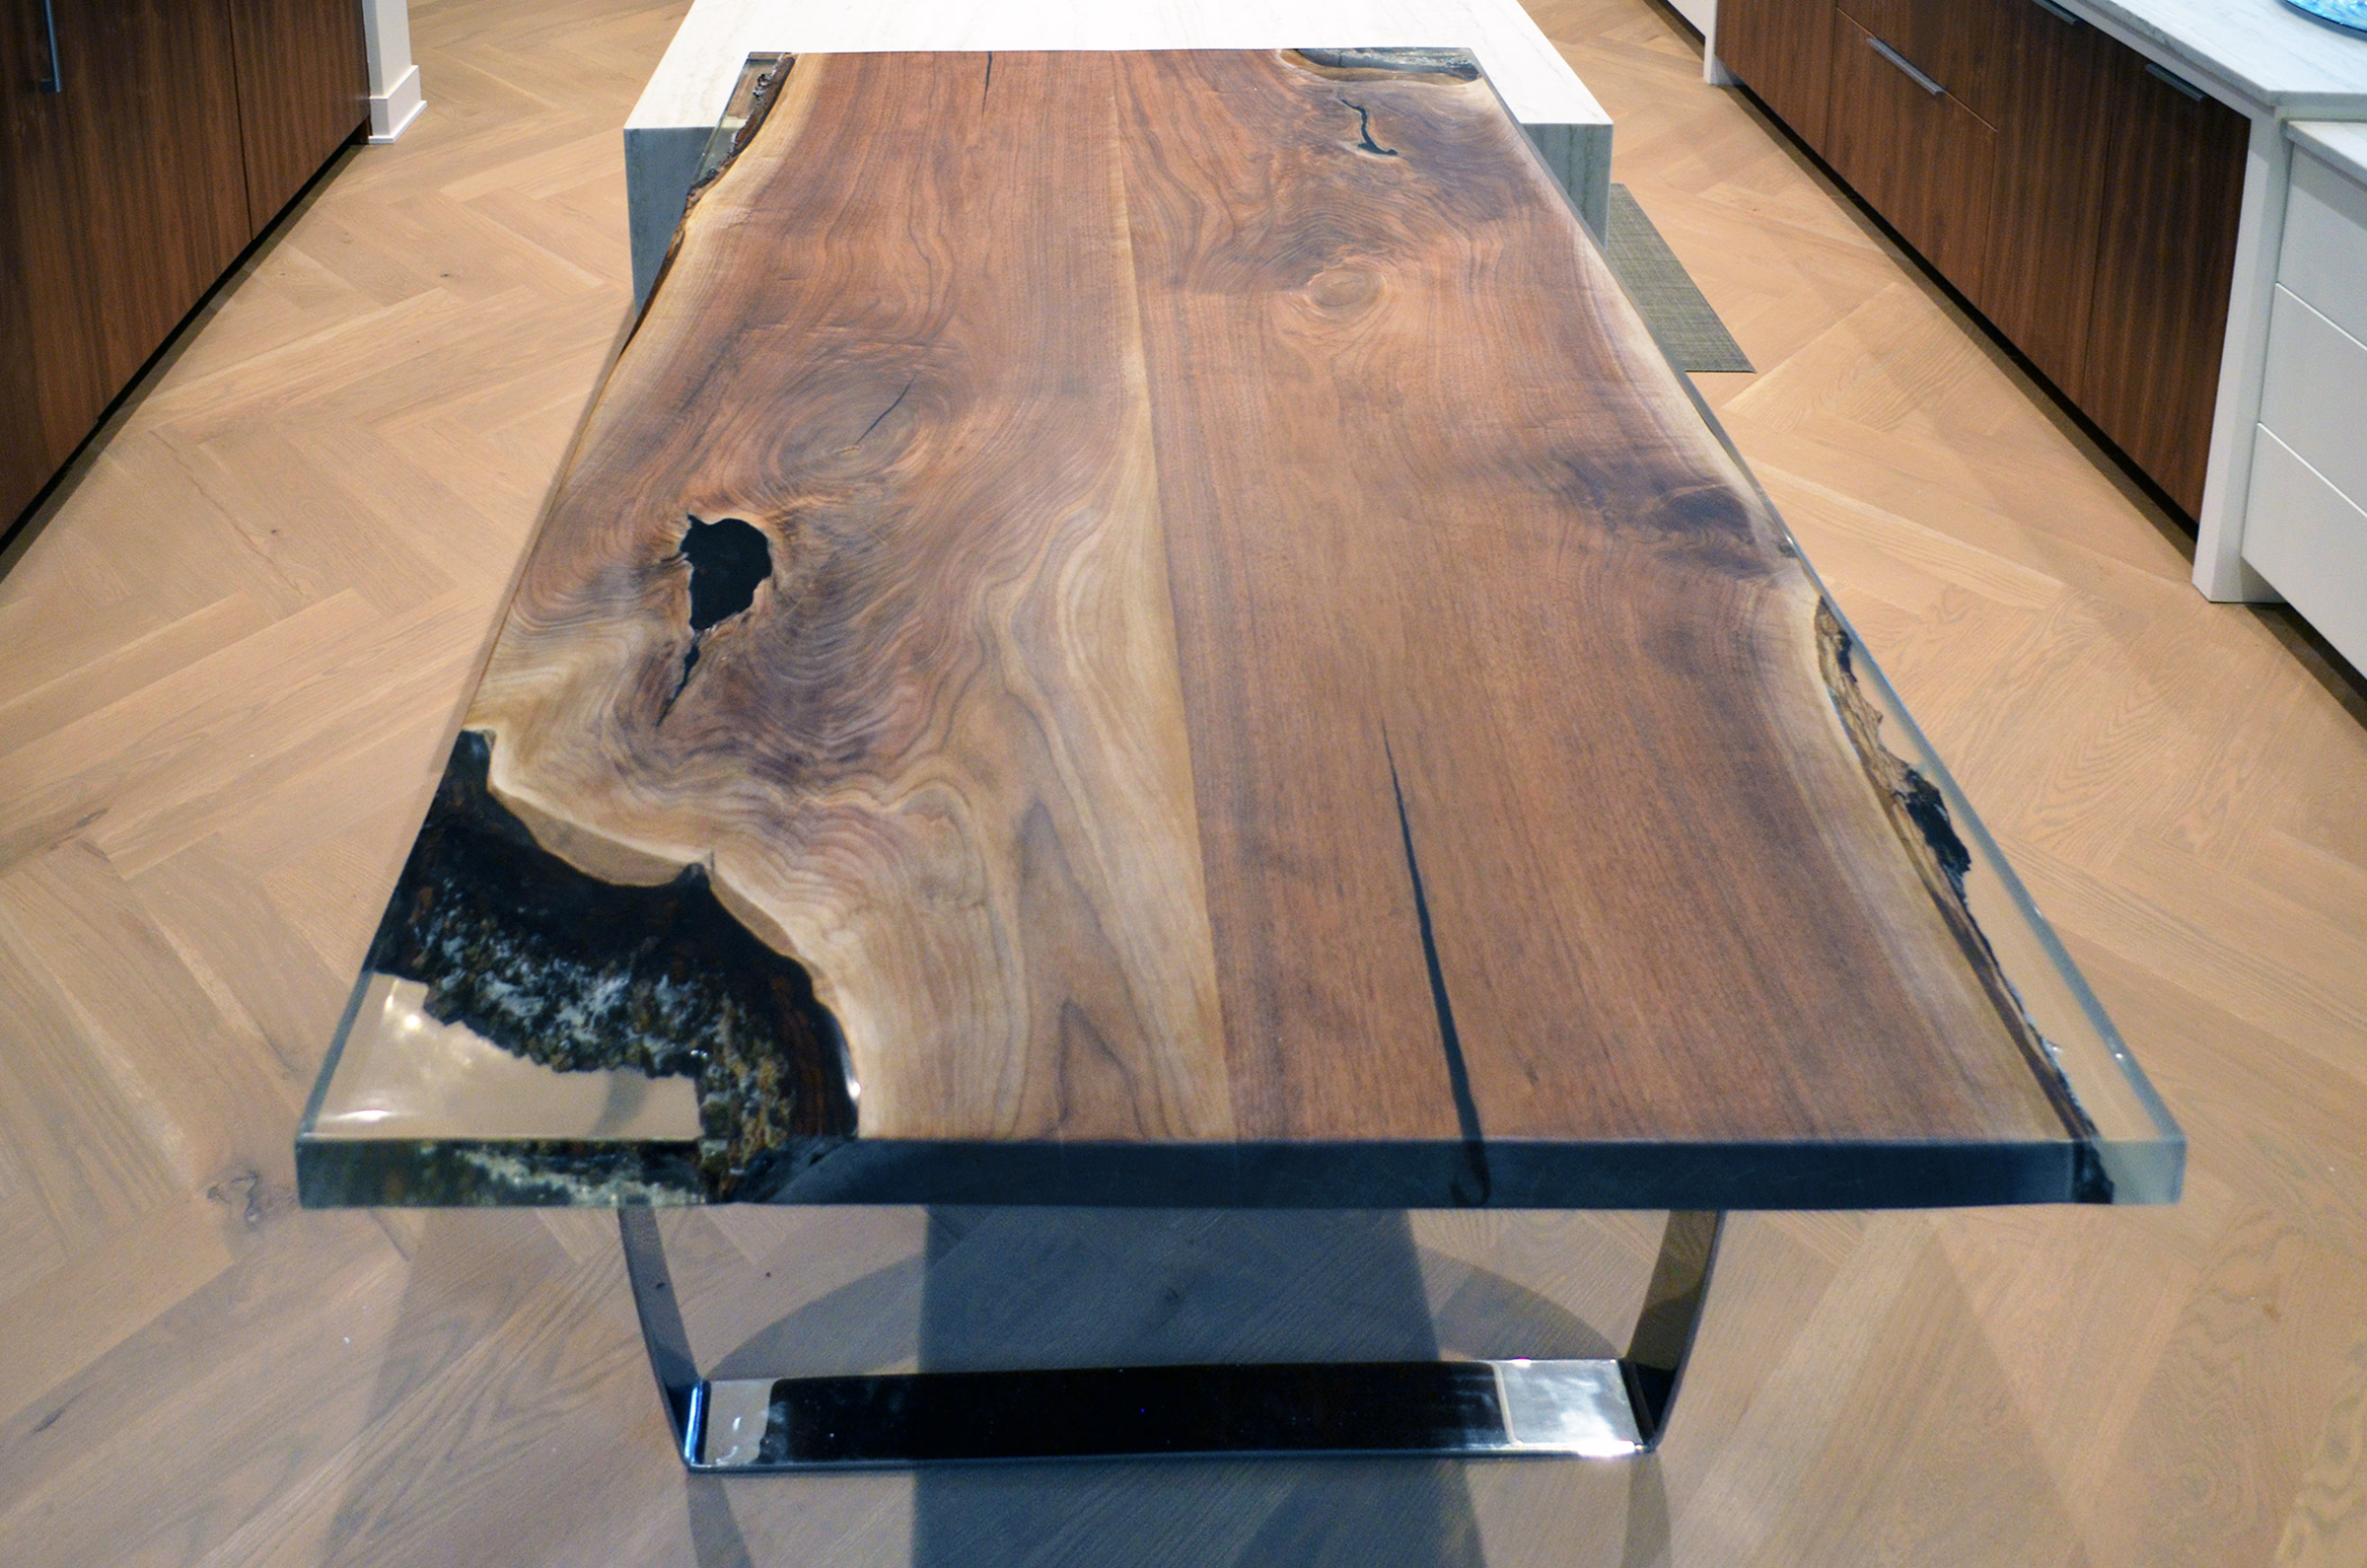 Awesome Live Edge Walnut Epoxy Inlay Dining Table Abodeacious Download Free Architecture Designs Scobabritishbridgeorg